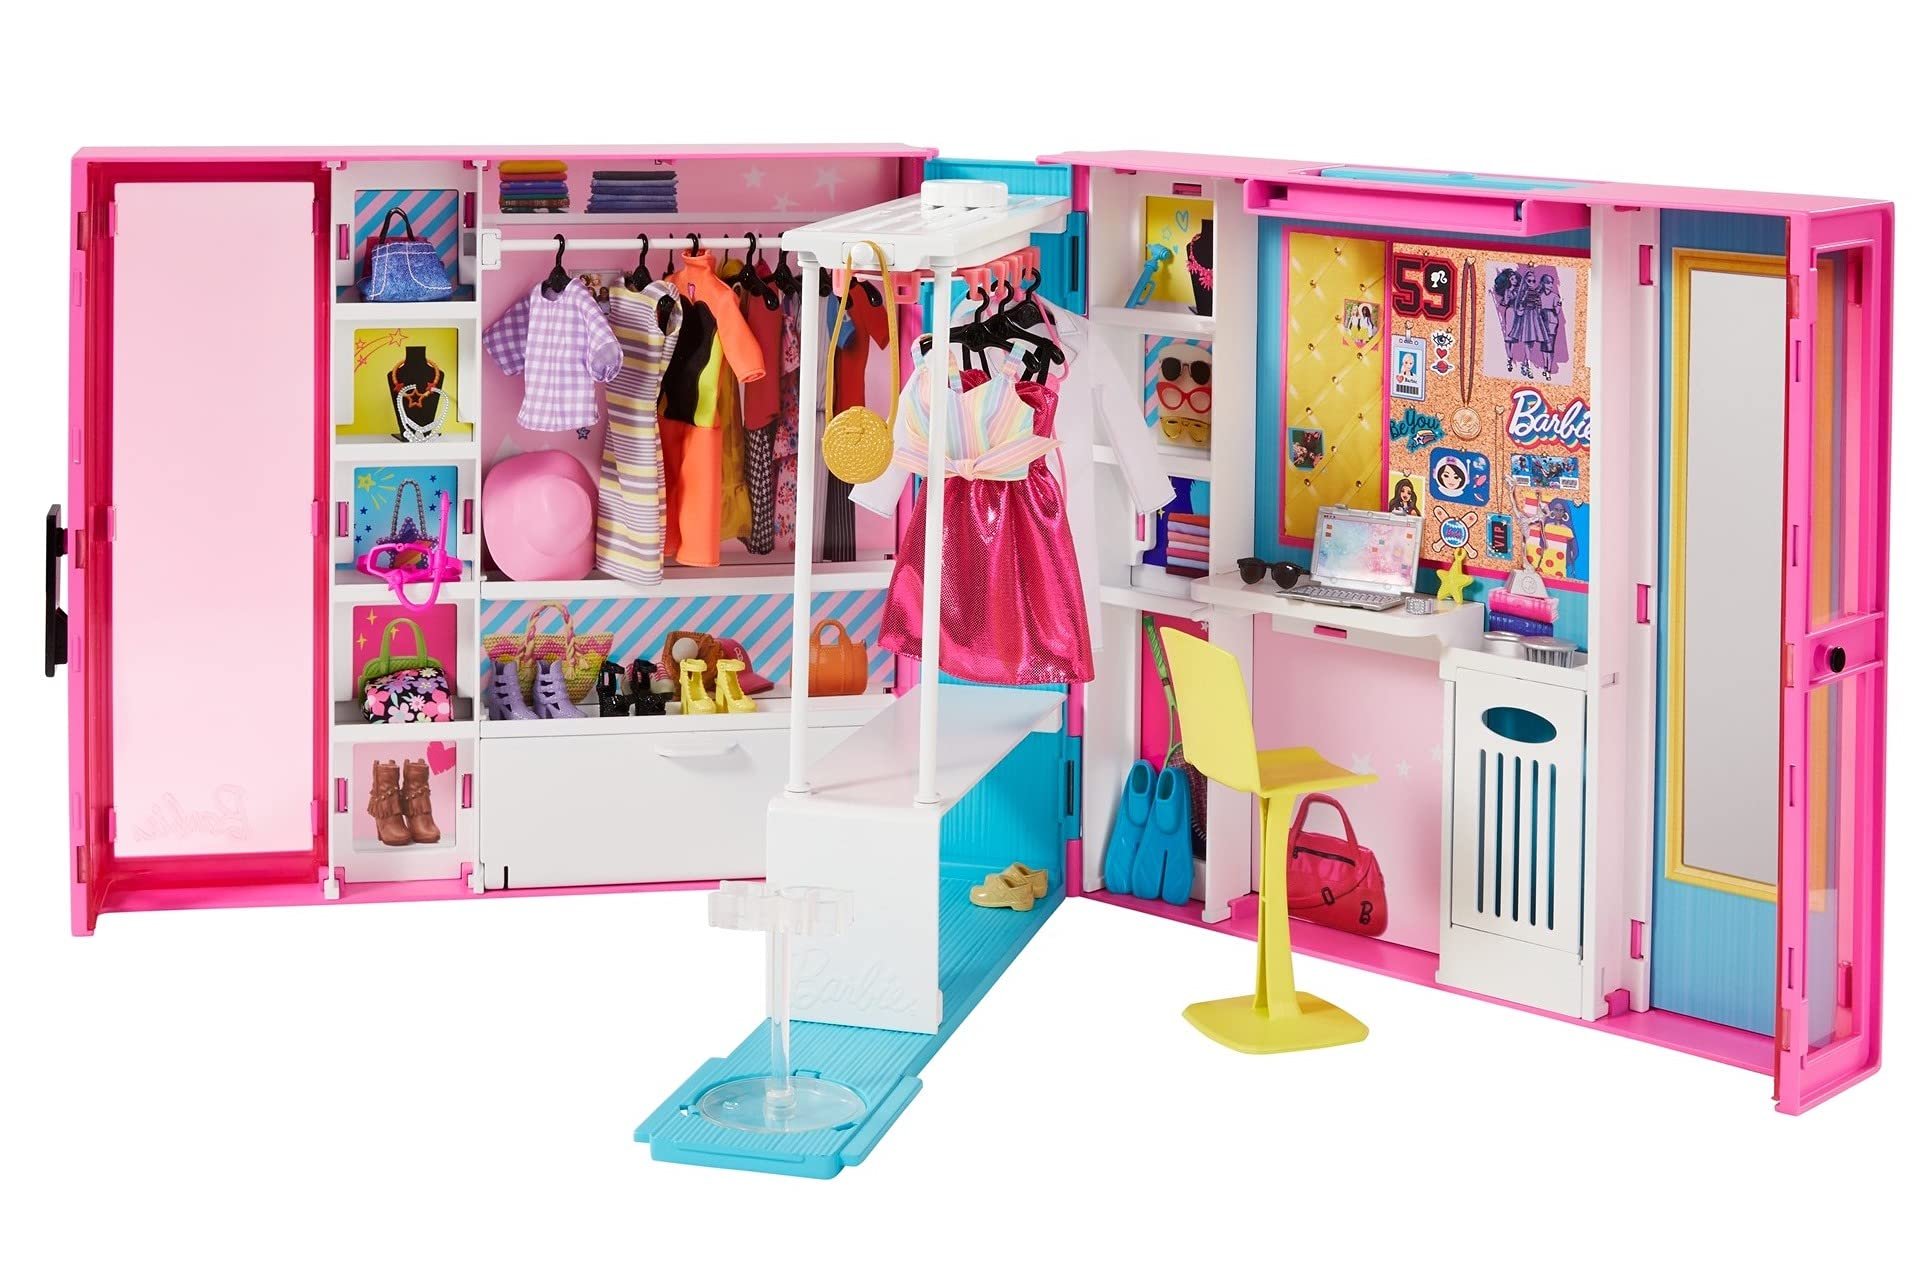 Barbie Dream Closet with 30+ Pieces, Toy Closet, Features 10+ Storage Areas, Full-Length Mirror, Includes 5 Outfits, Gift for Kids 3 to 7 Years Old, Pink